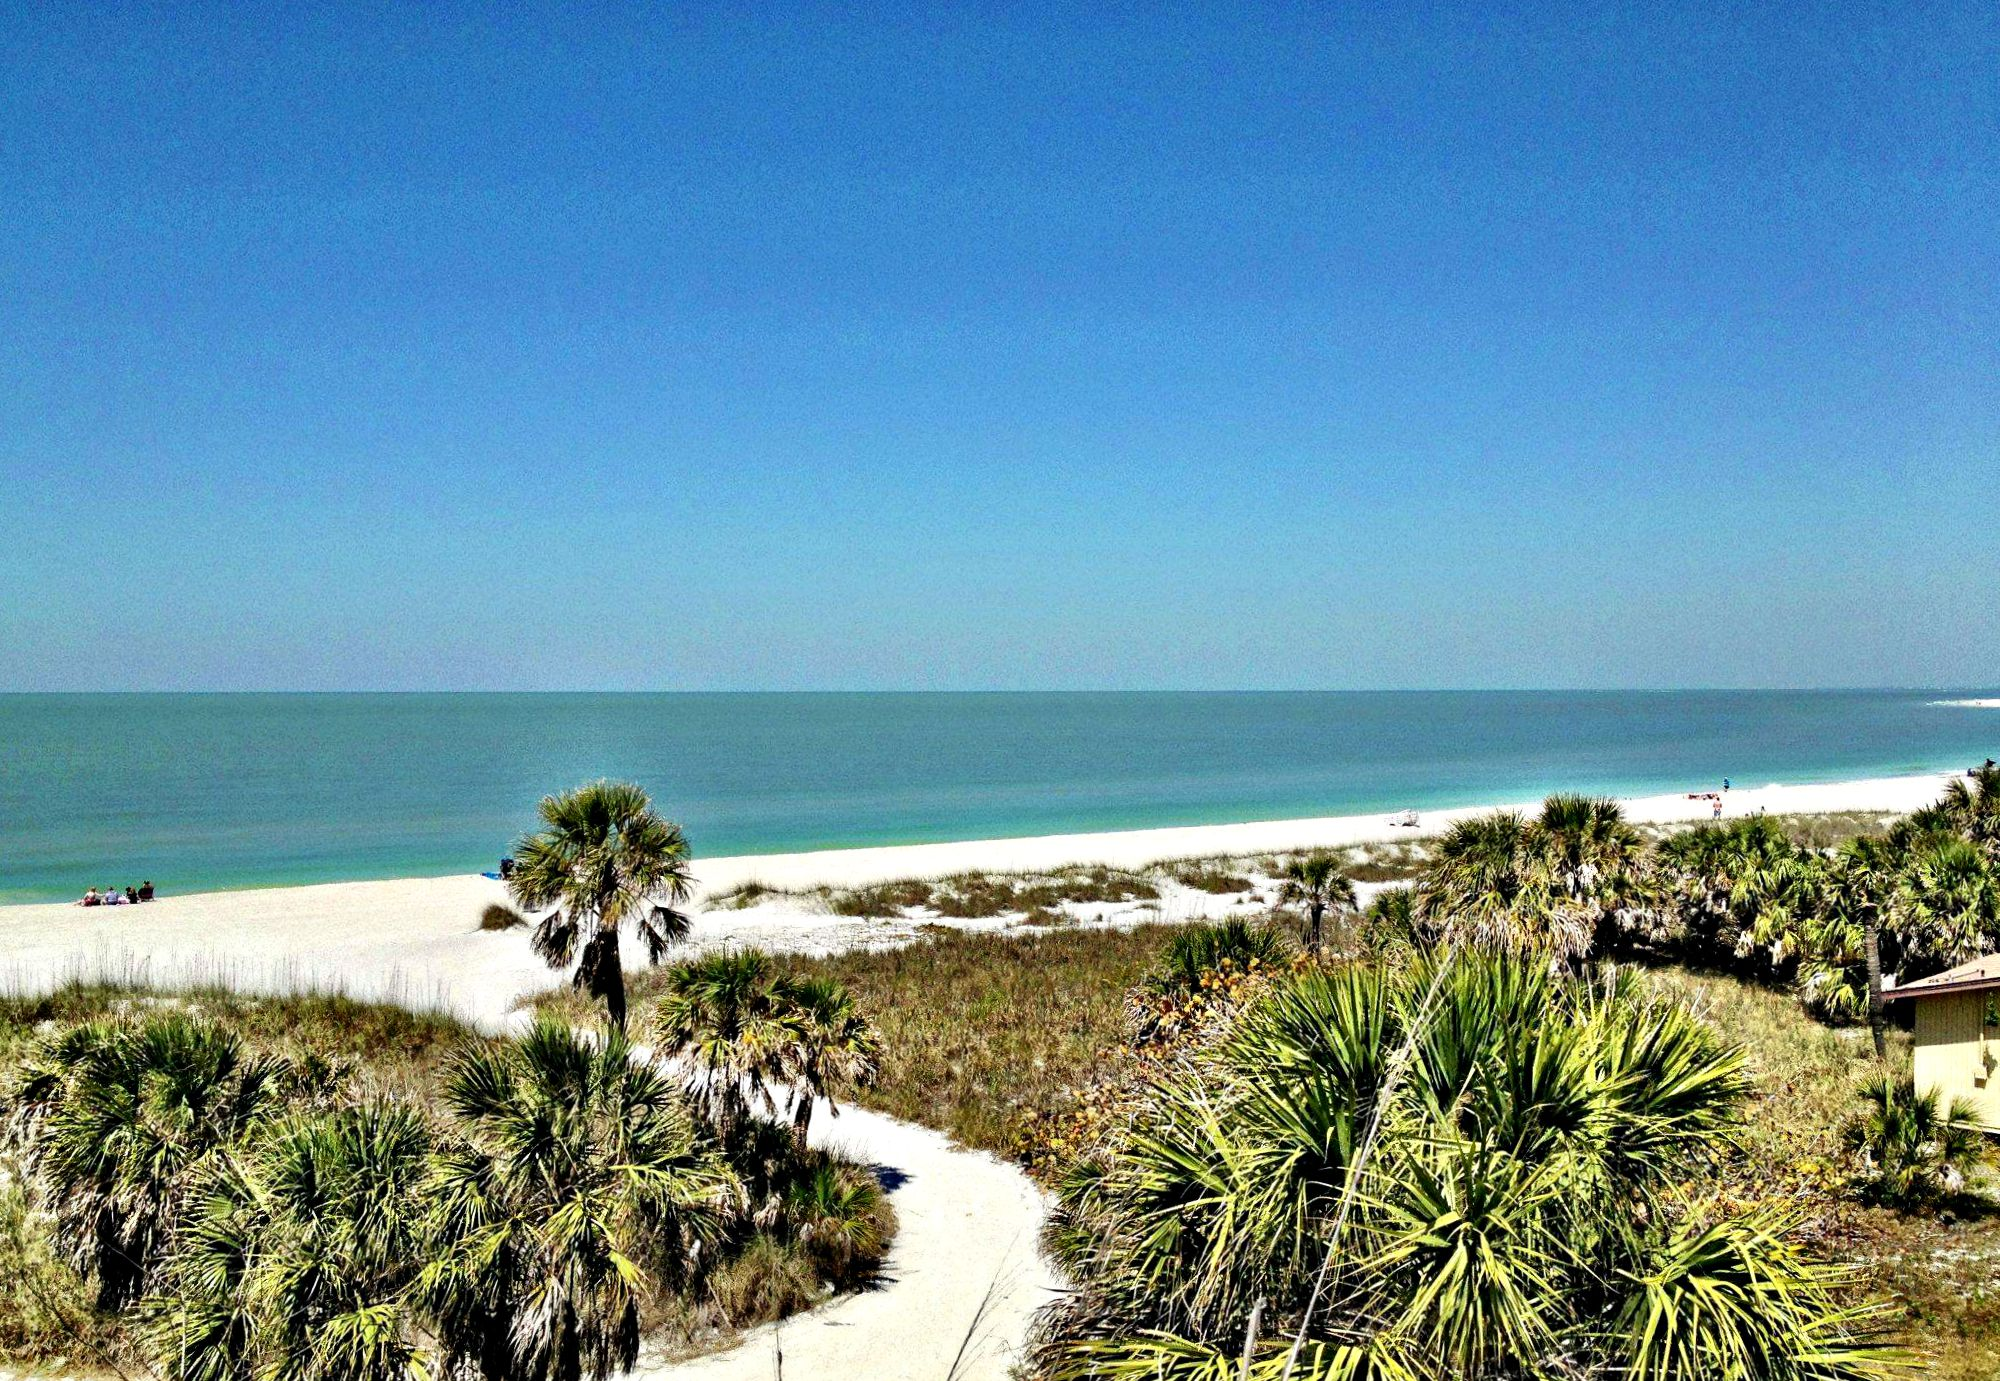 Gulf beach with white sand and palm trees at Fort De Soto State Park near Clearwater, Florida